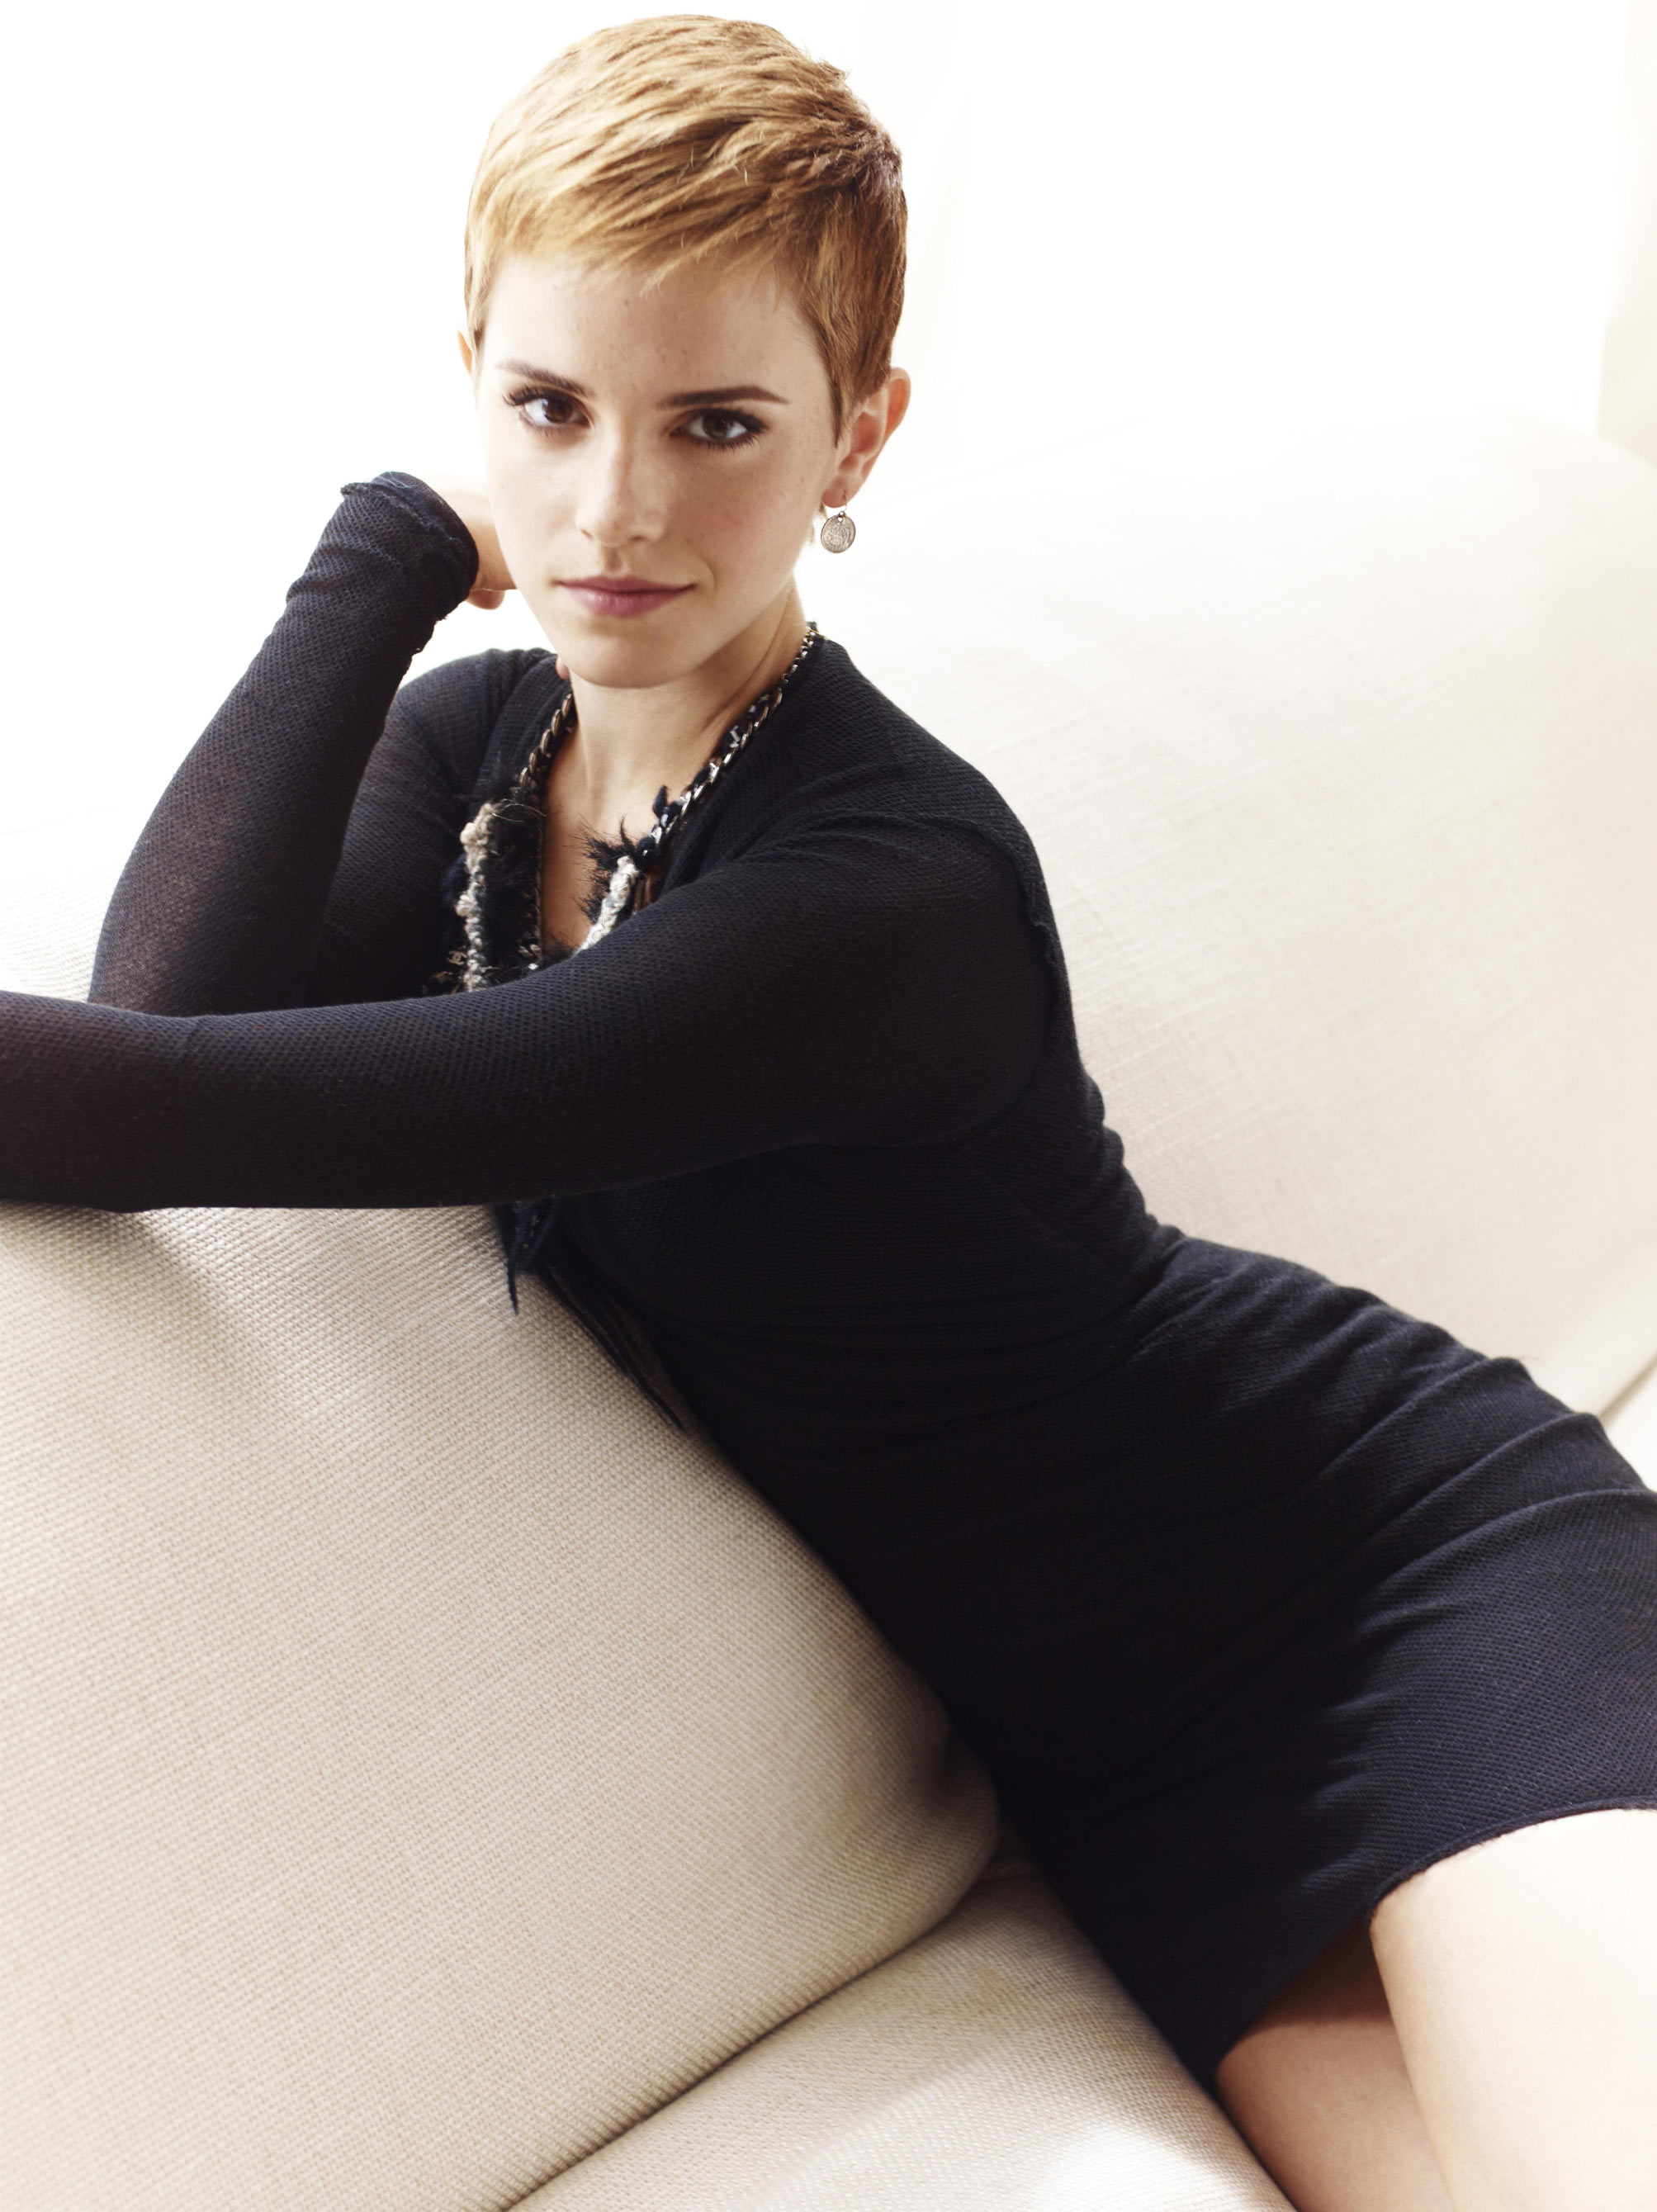 Emma Watson – Photoshoot By Mariano Vivanco Wallpaper